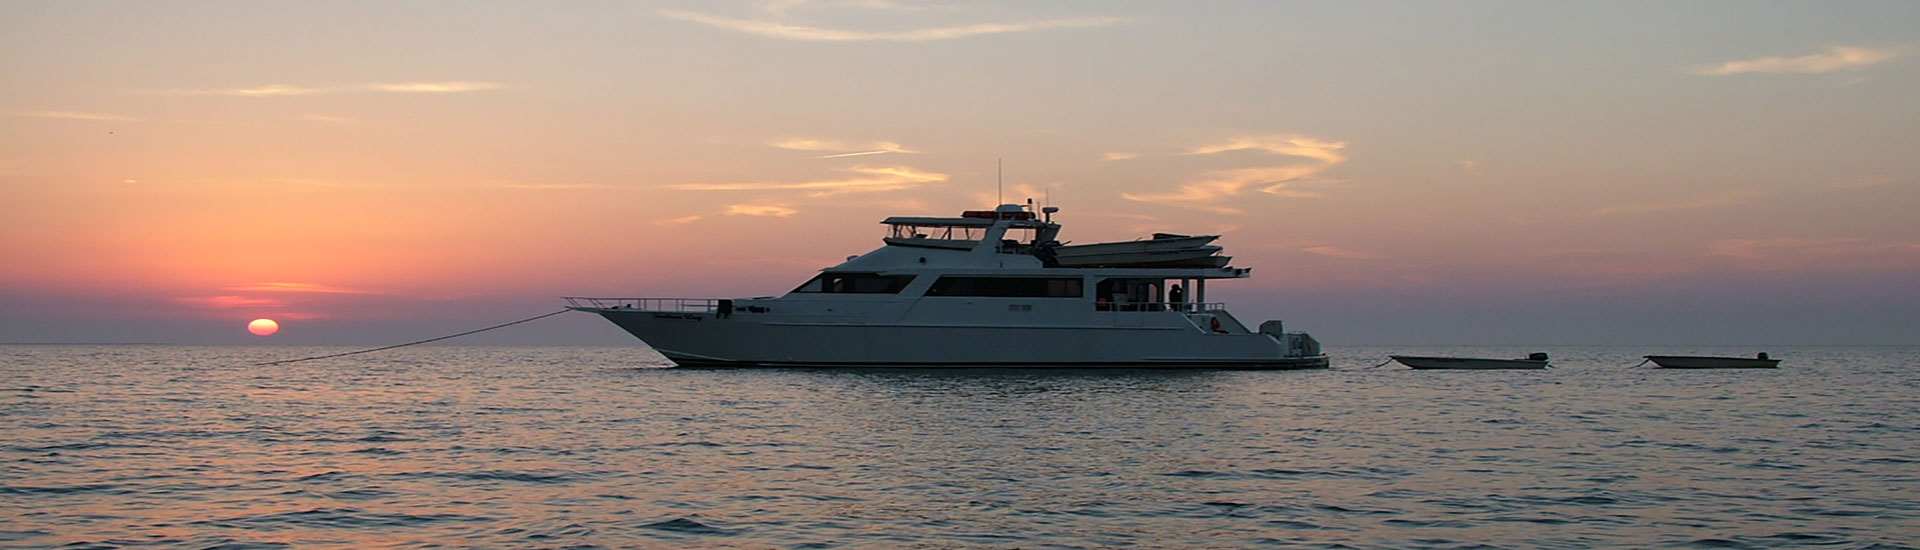 Southern Way Charters, Inc